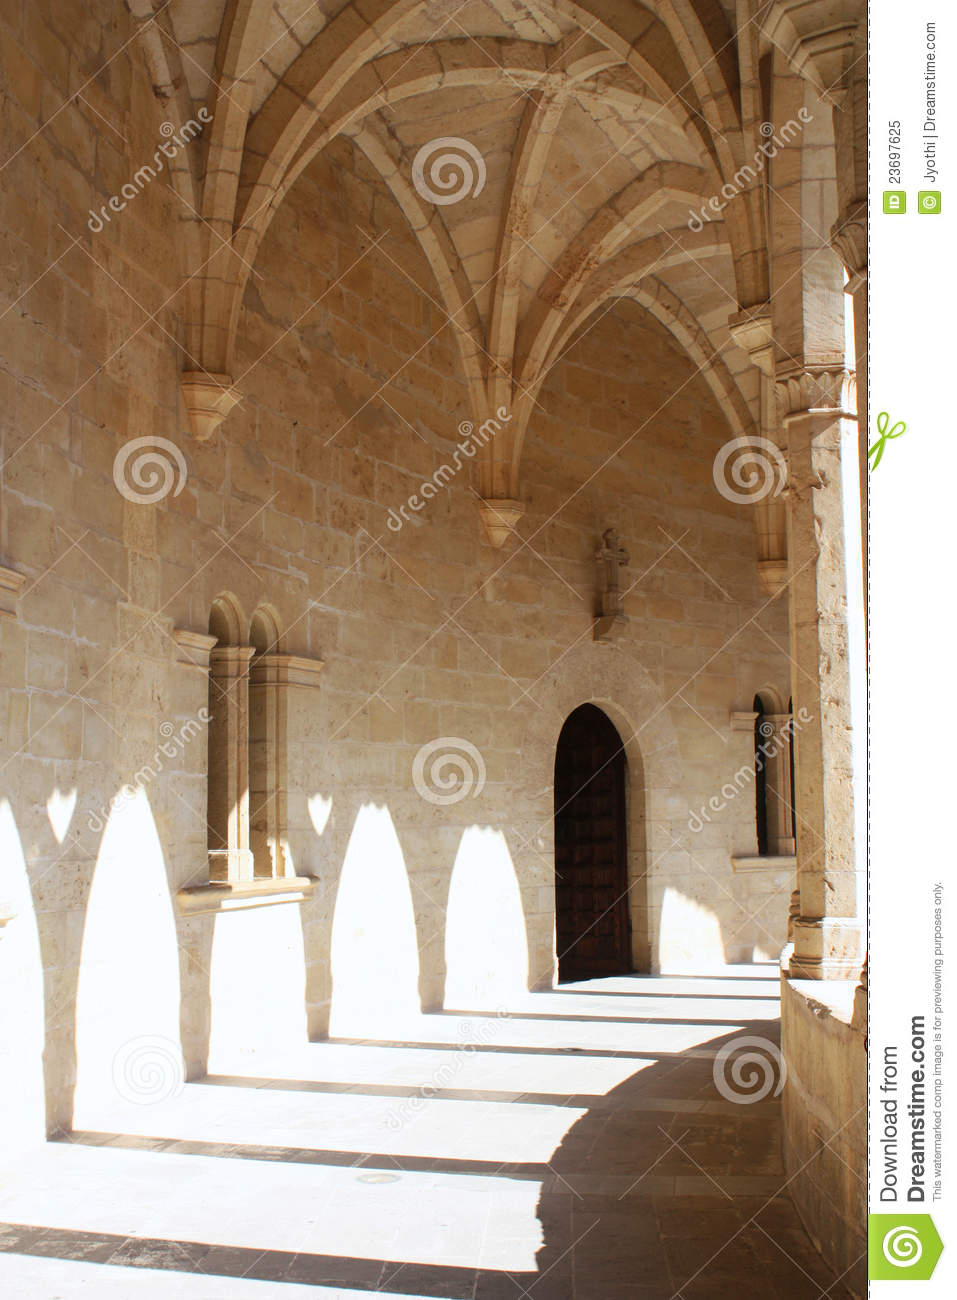 Download Bellver castle stock image. Image of gothic, interior - 23697625